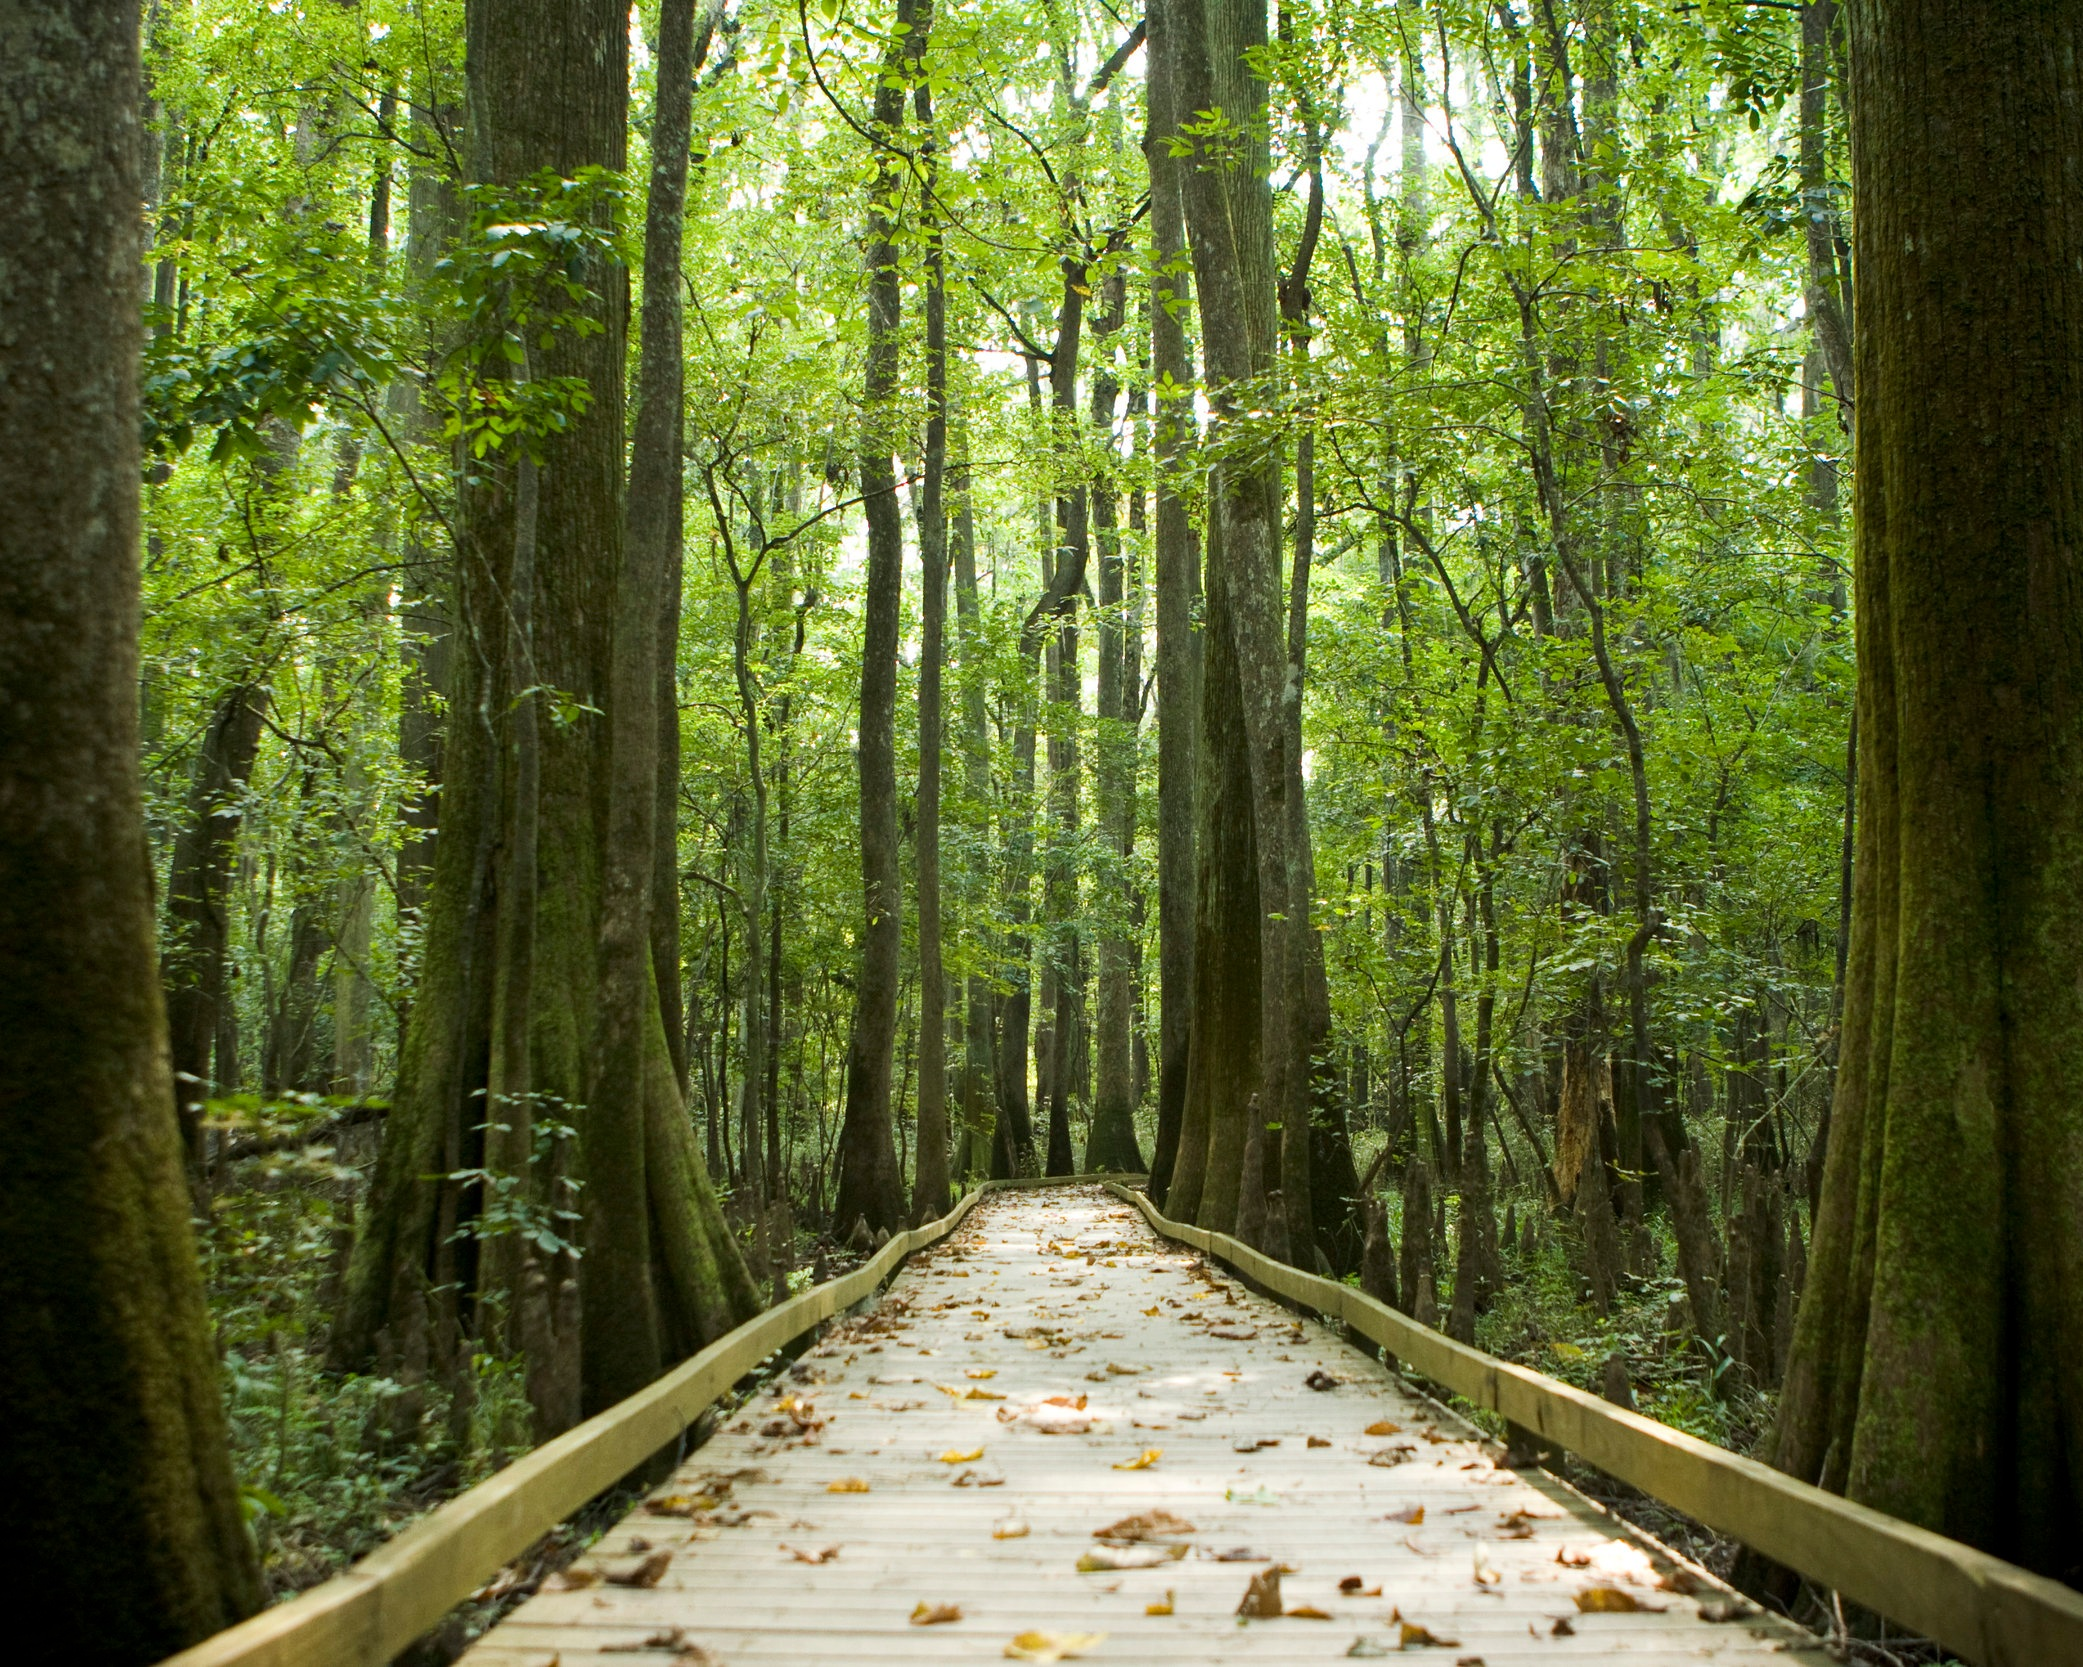 Congaree National Park - You'll fall in love with the great outdoors when you visit the state's only national park. Once there, you'll find canoe trails and 18 miles of trails that are perfect for hiking. Come and experience this patch of perfect South Carolina wilderness.